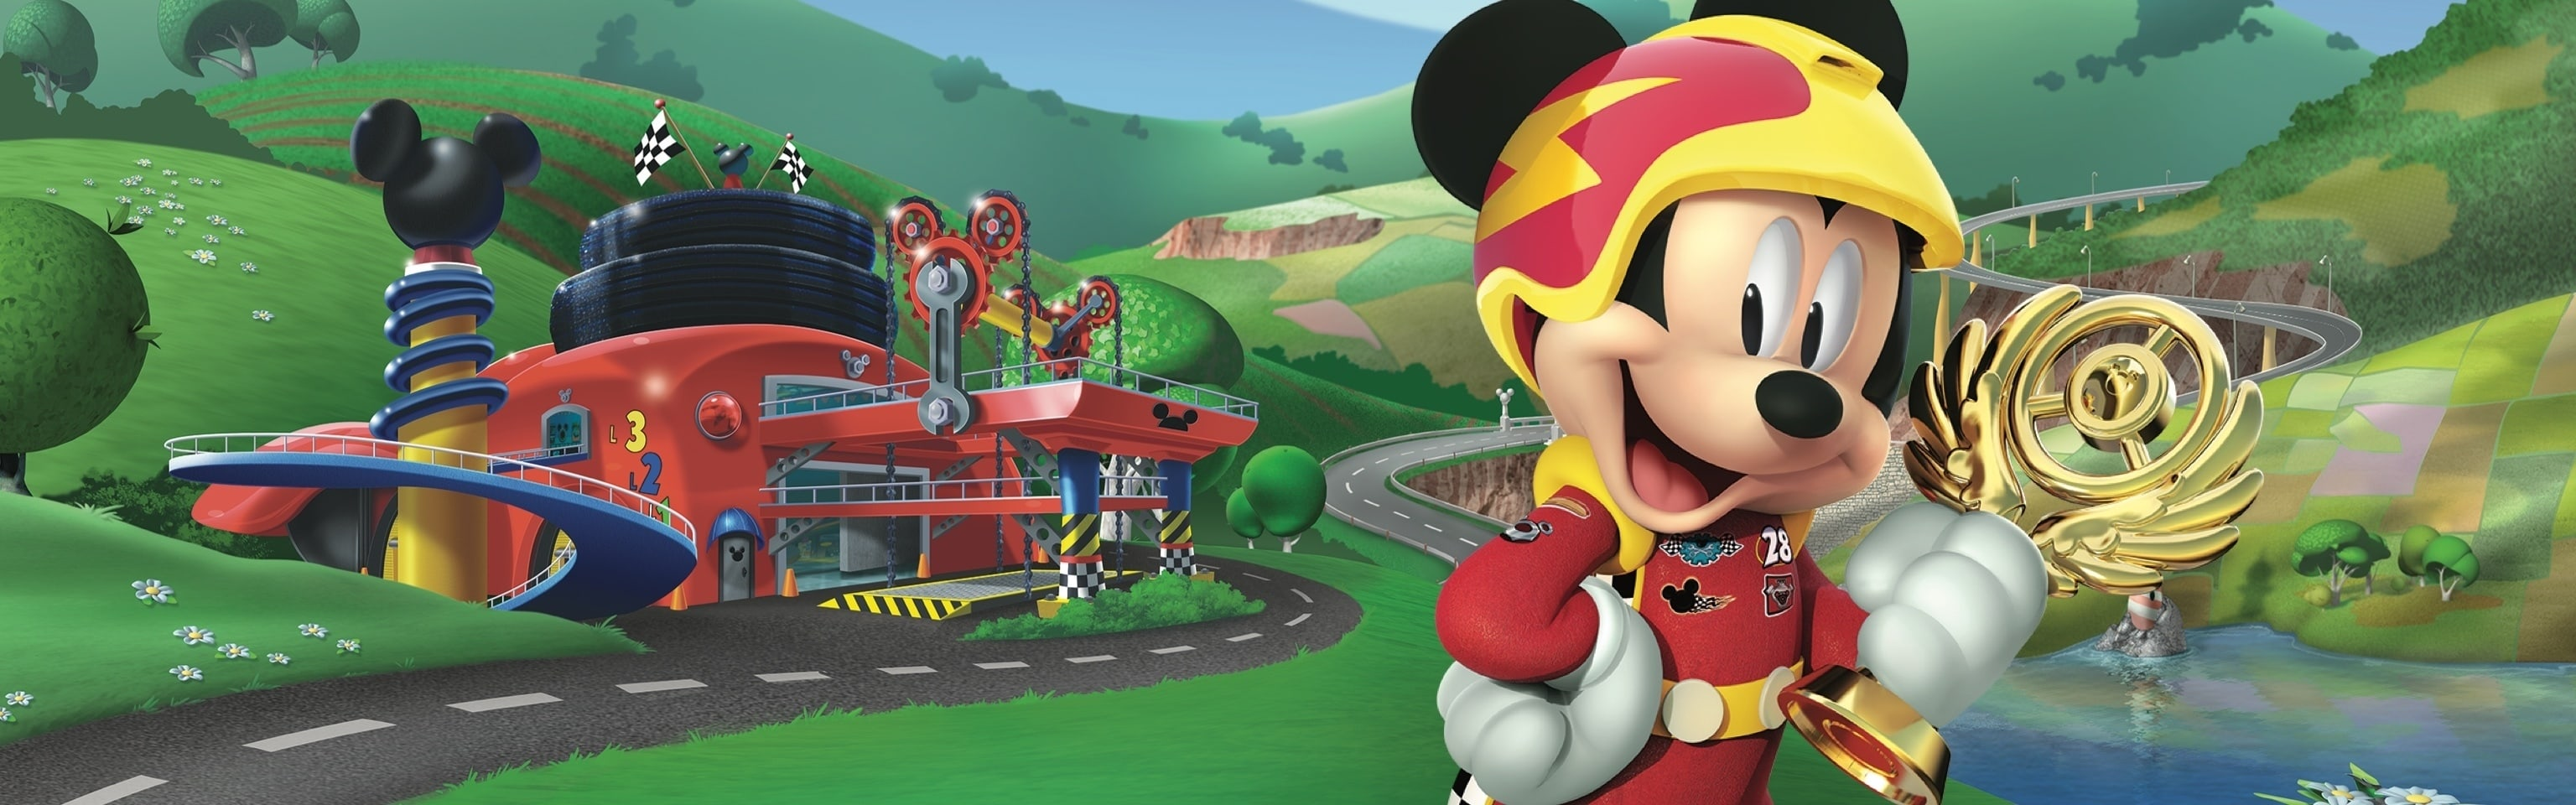 Mickey and the Roadster Racers - Homepage Hero